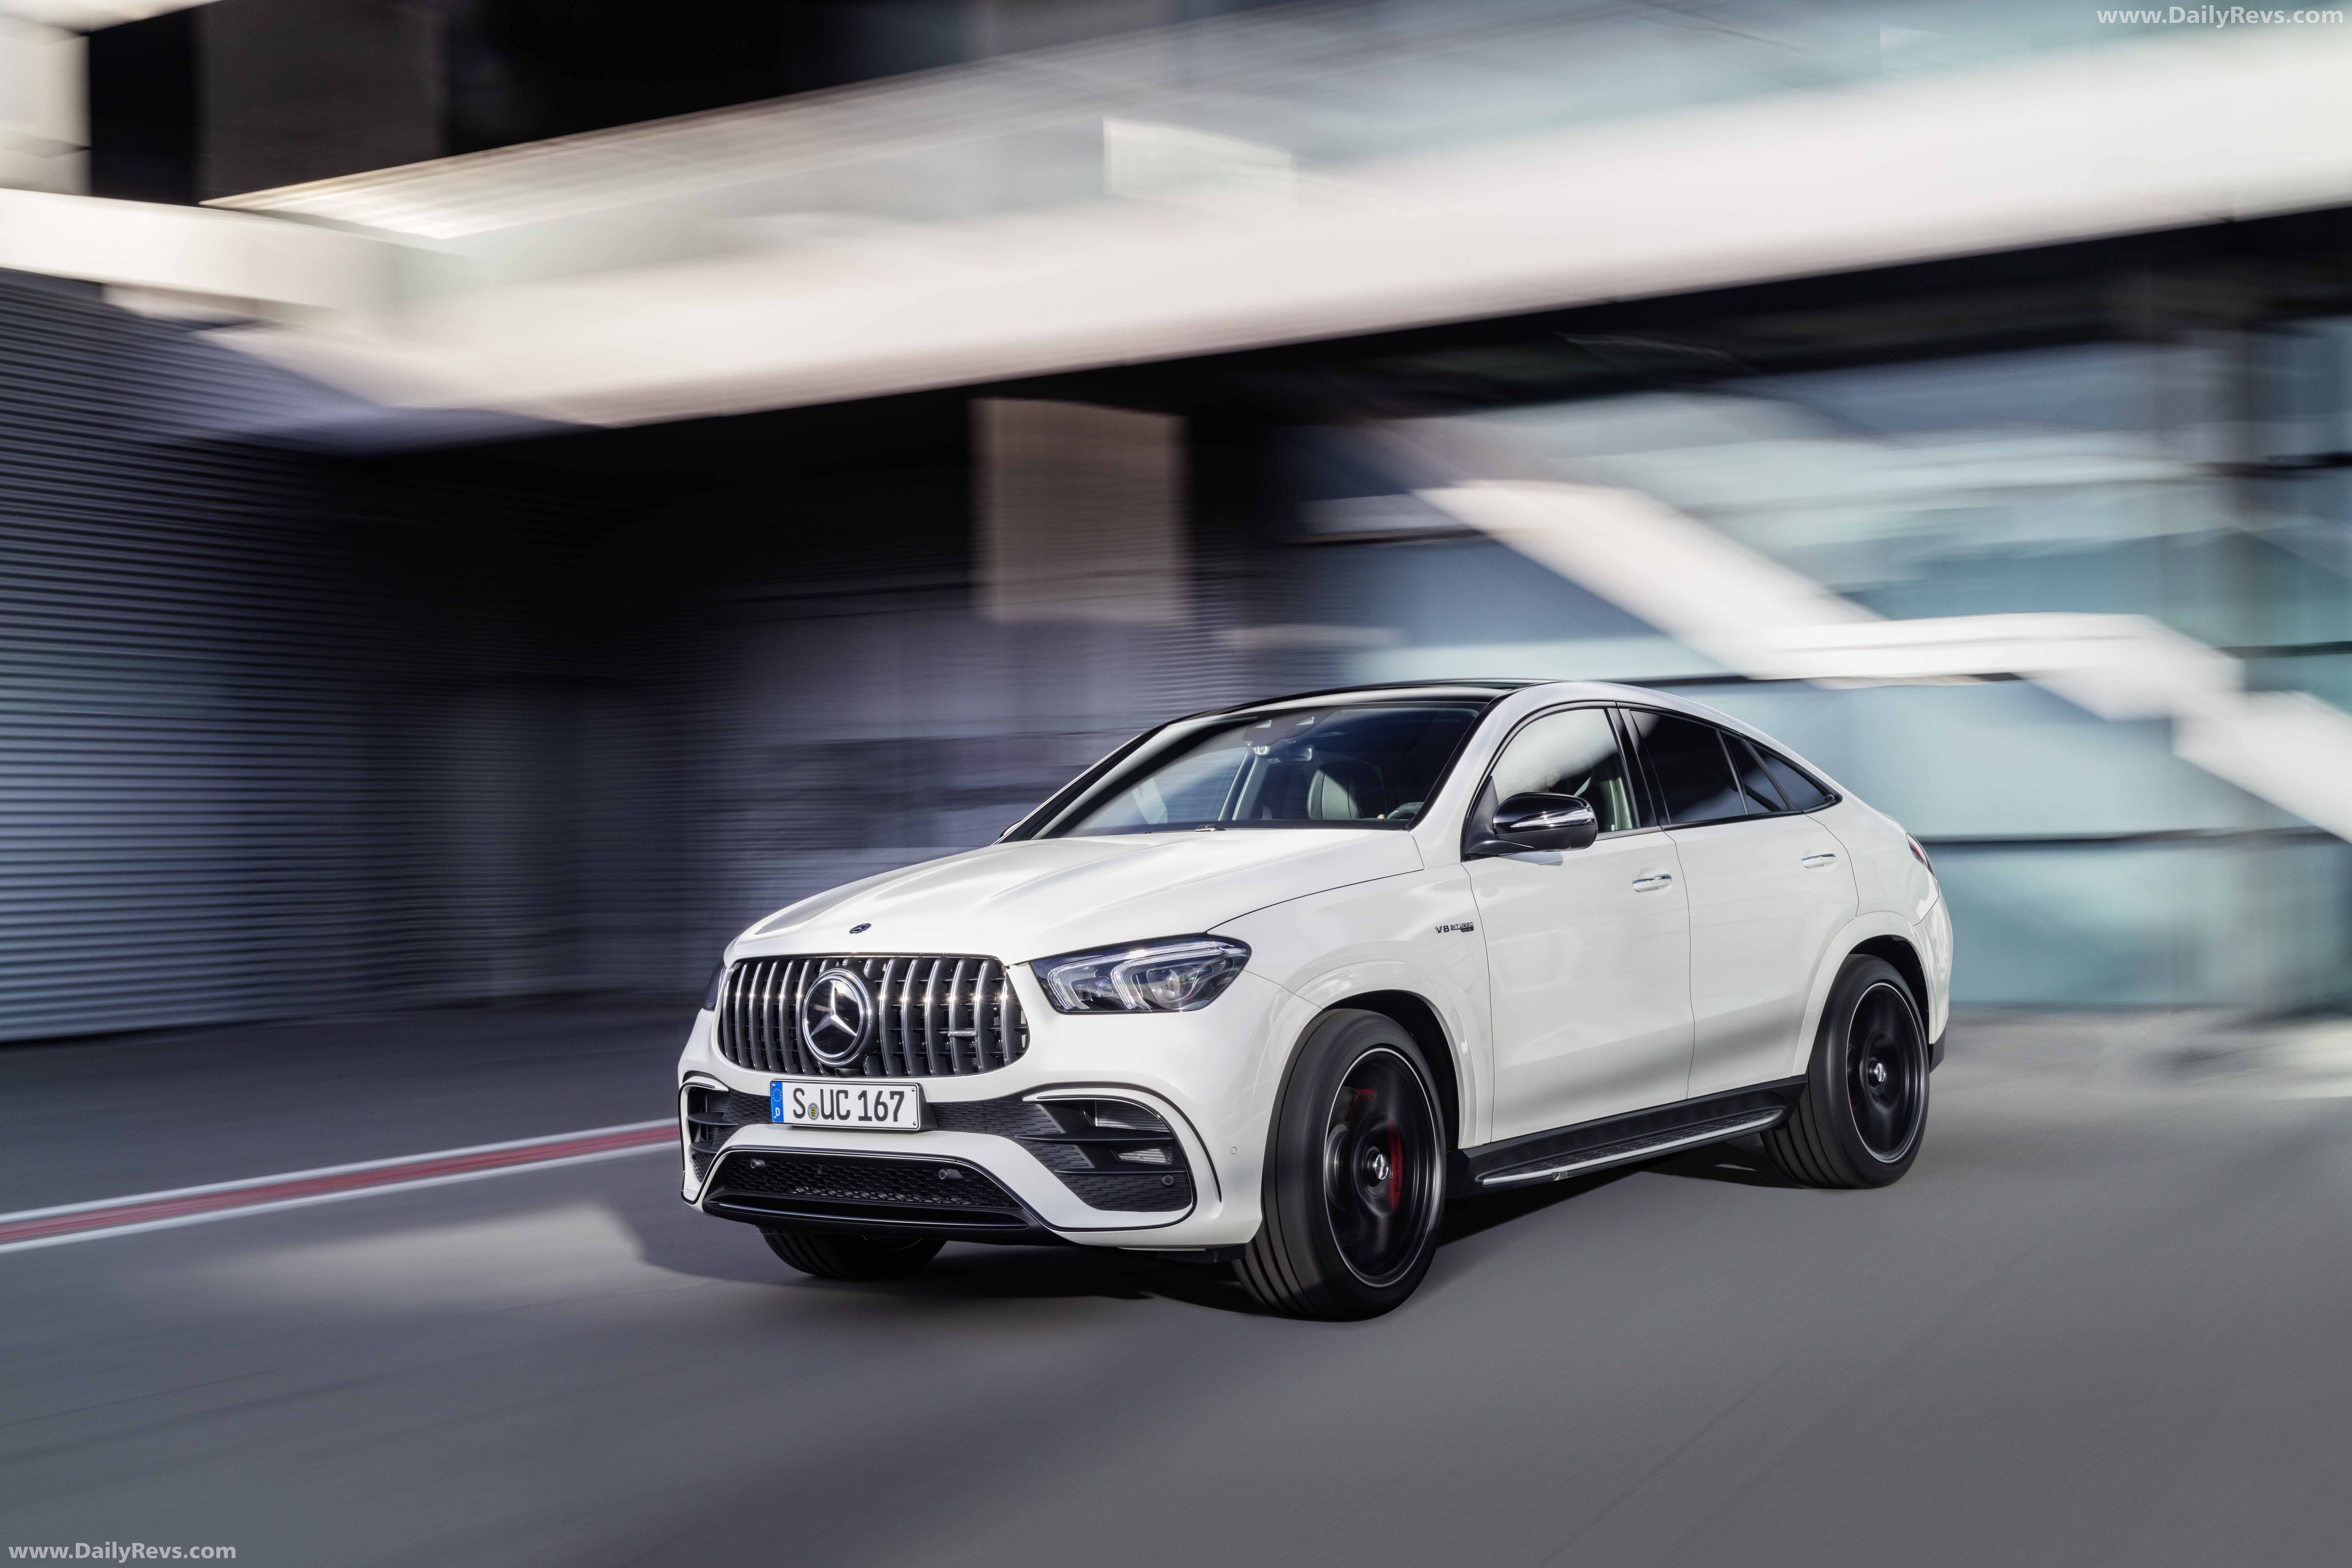 2021 Mercedes-Benz GLE63 S AMG Coupe - HD Pictures, Videos ...